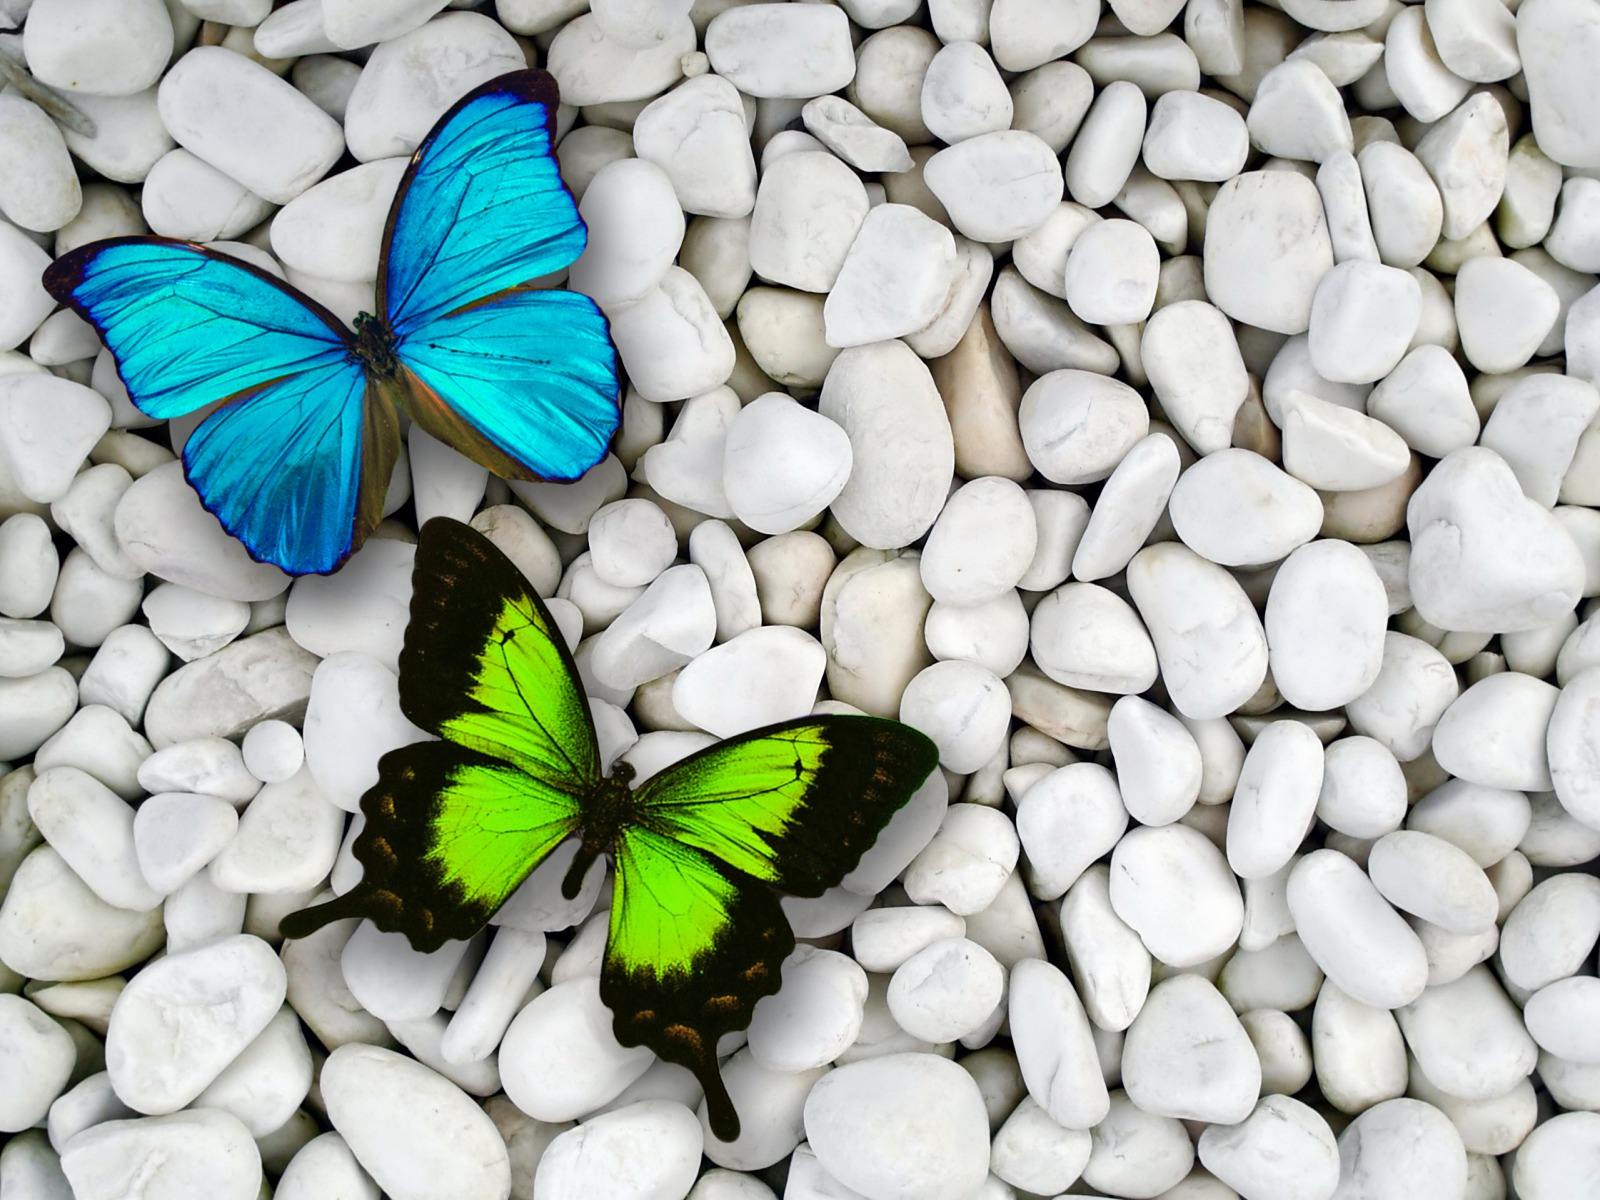 Blue green butterfly and stone contrast Wallpaper backgrounds 1600x1200